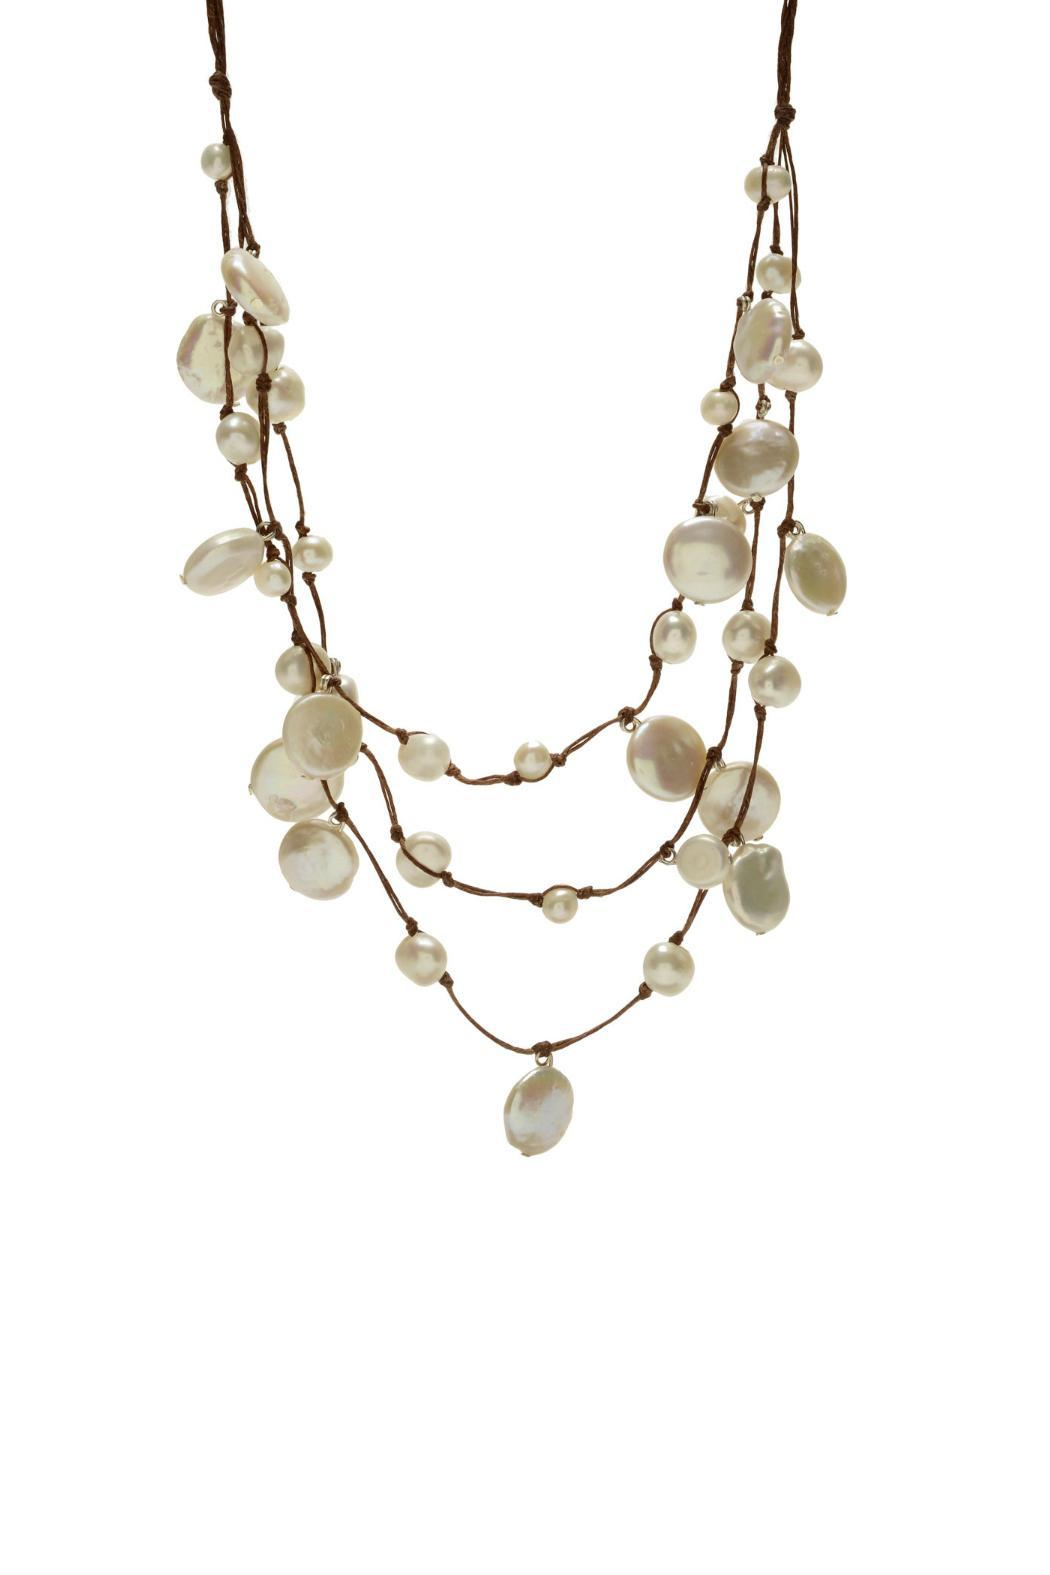 In2Design Linen Pearl Necklace from Dallas by Gemma Collection